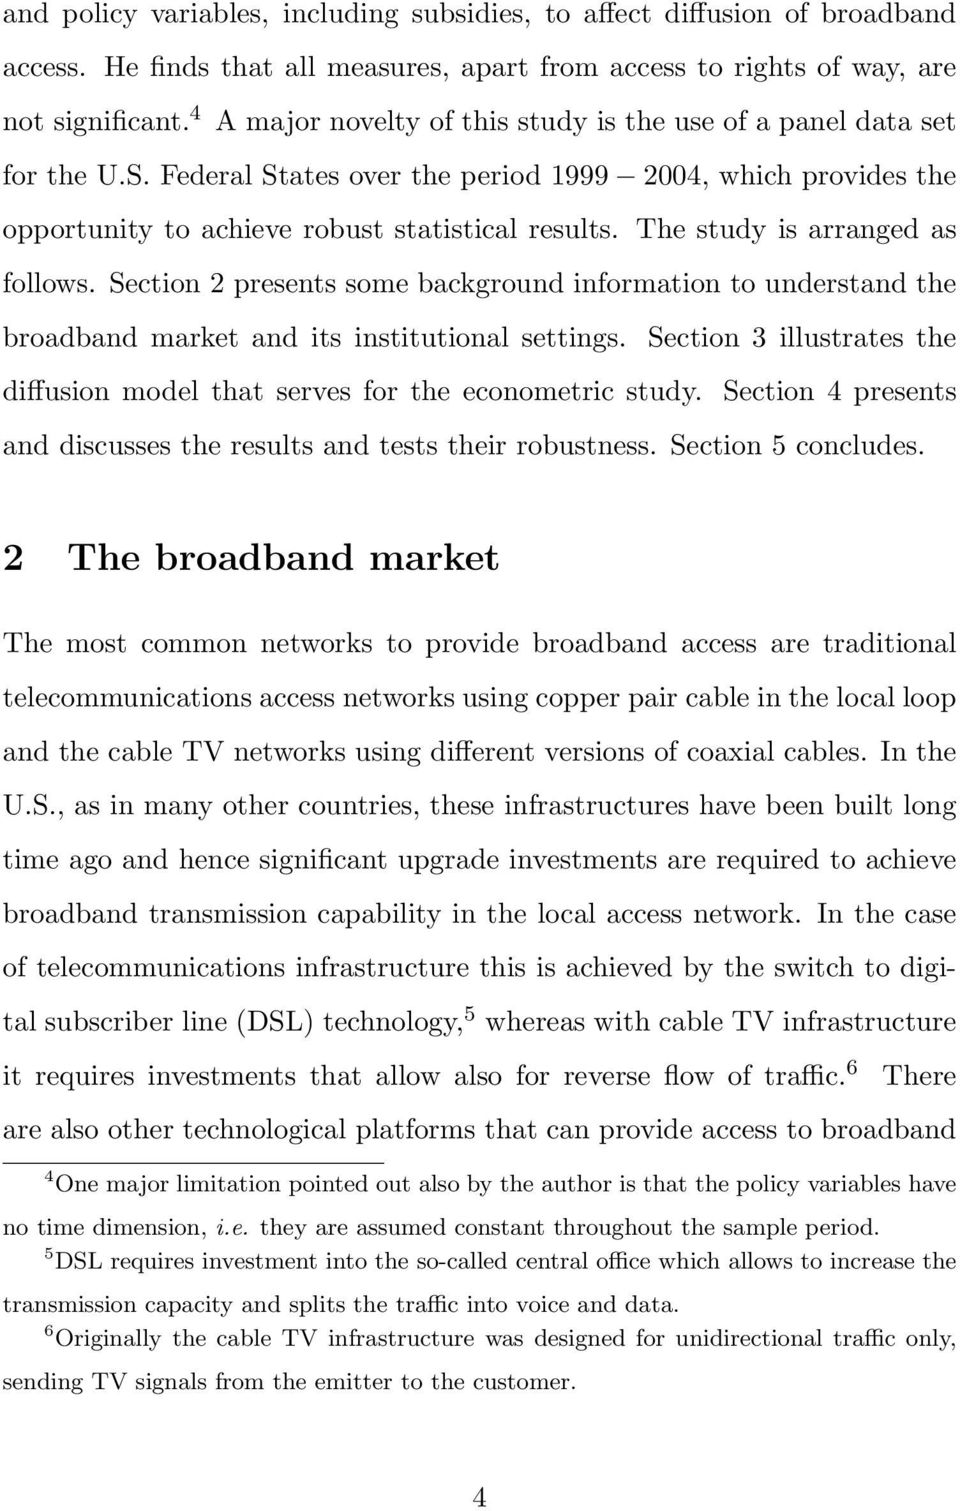 The study is arranged as follows. Section 2 presents some background information to understand the broadband market and its institutional settings.